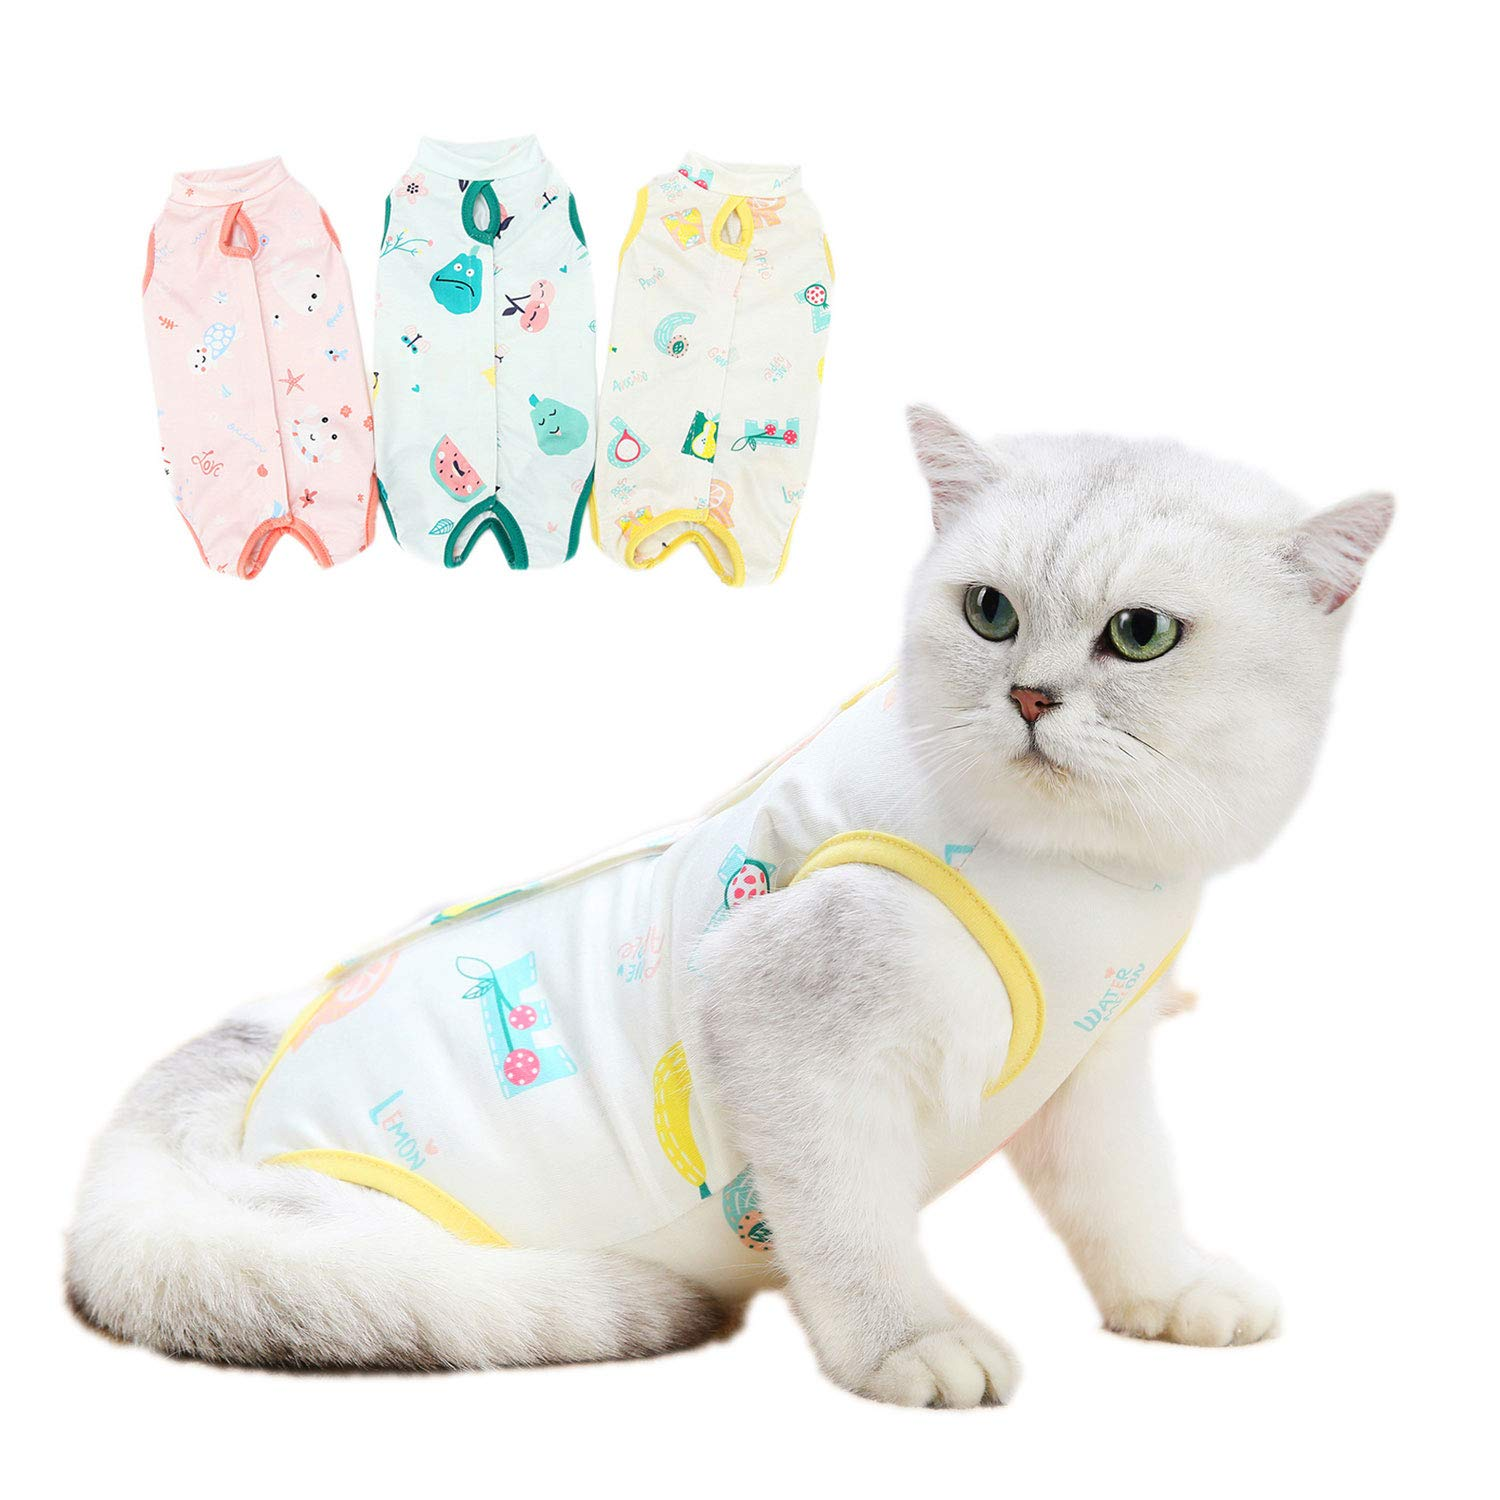 TAOZUA Cat Surgery Recovery Suit for Abdominal Wounds or Skin Diseases,Professional E-Collar Alternative After Surgery Wear Anti Licking Wounds for Cats/Dogs